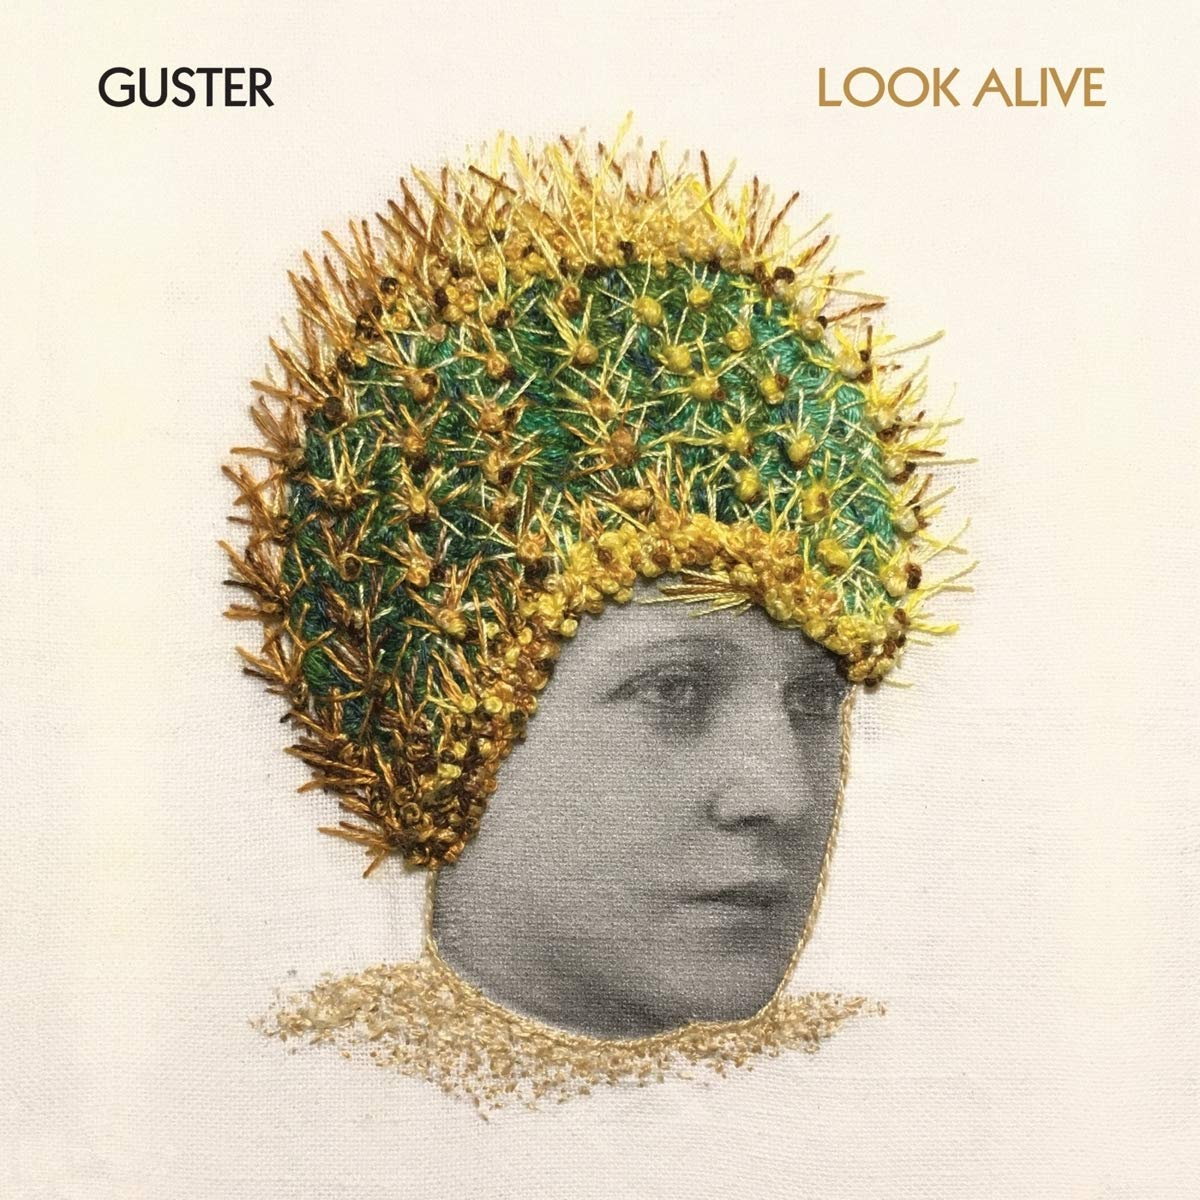 Guster - Look Alive [LP]